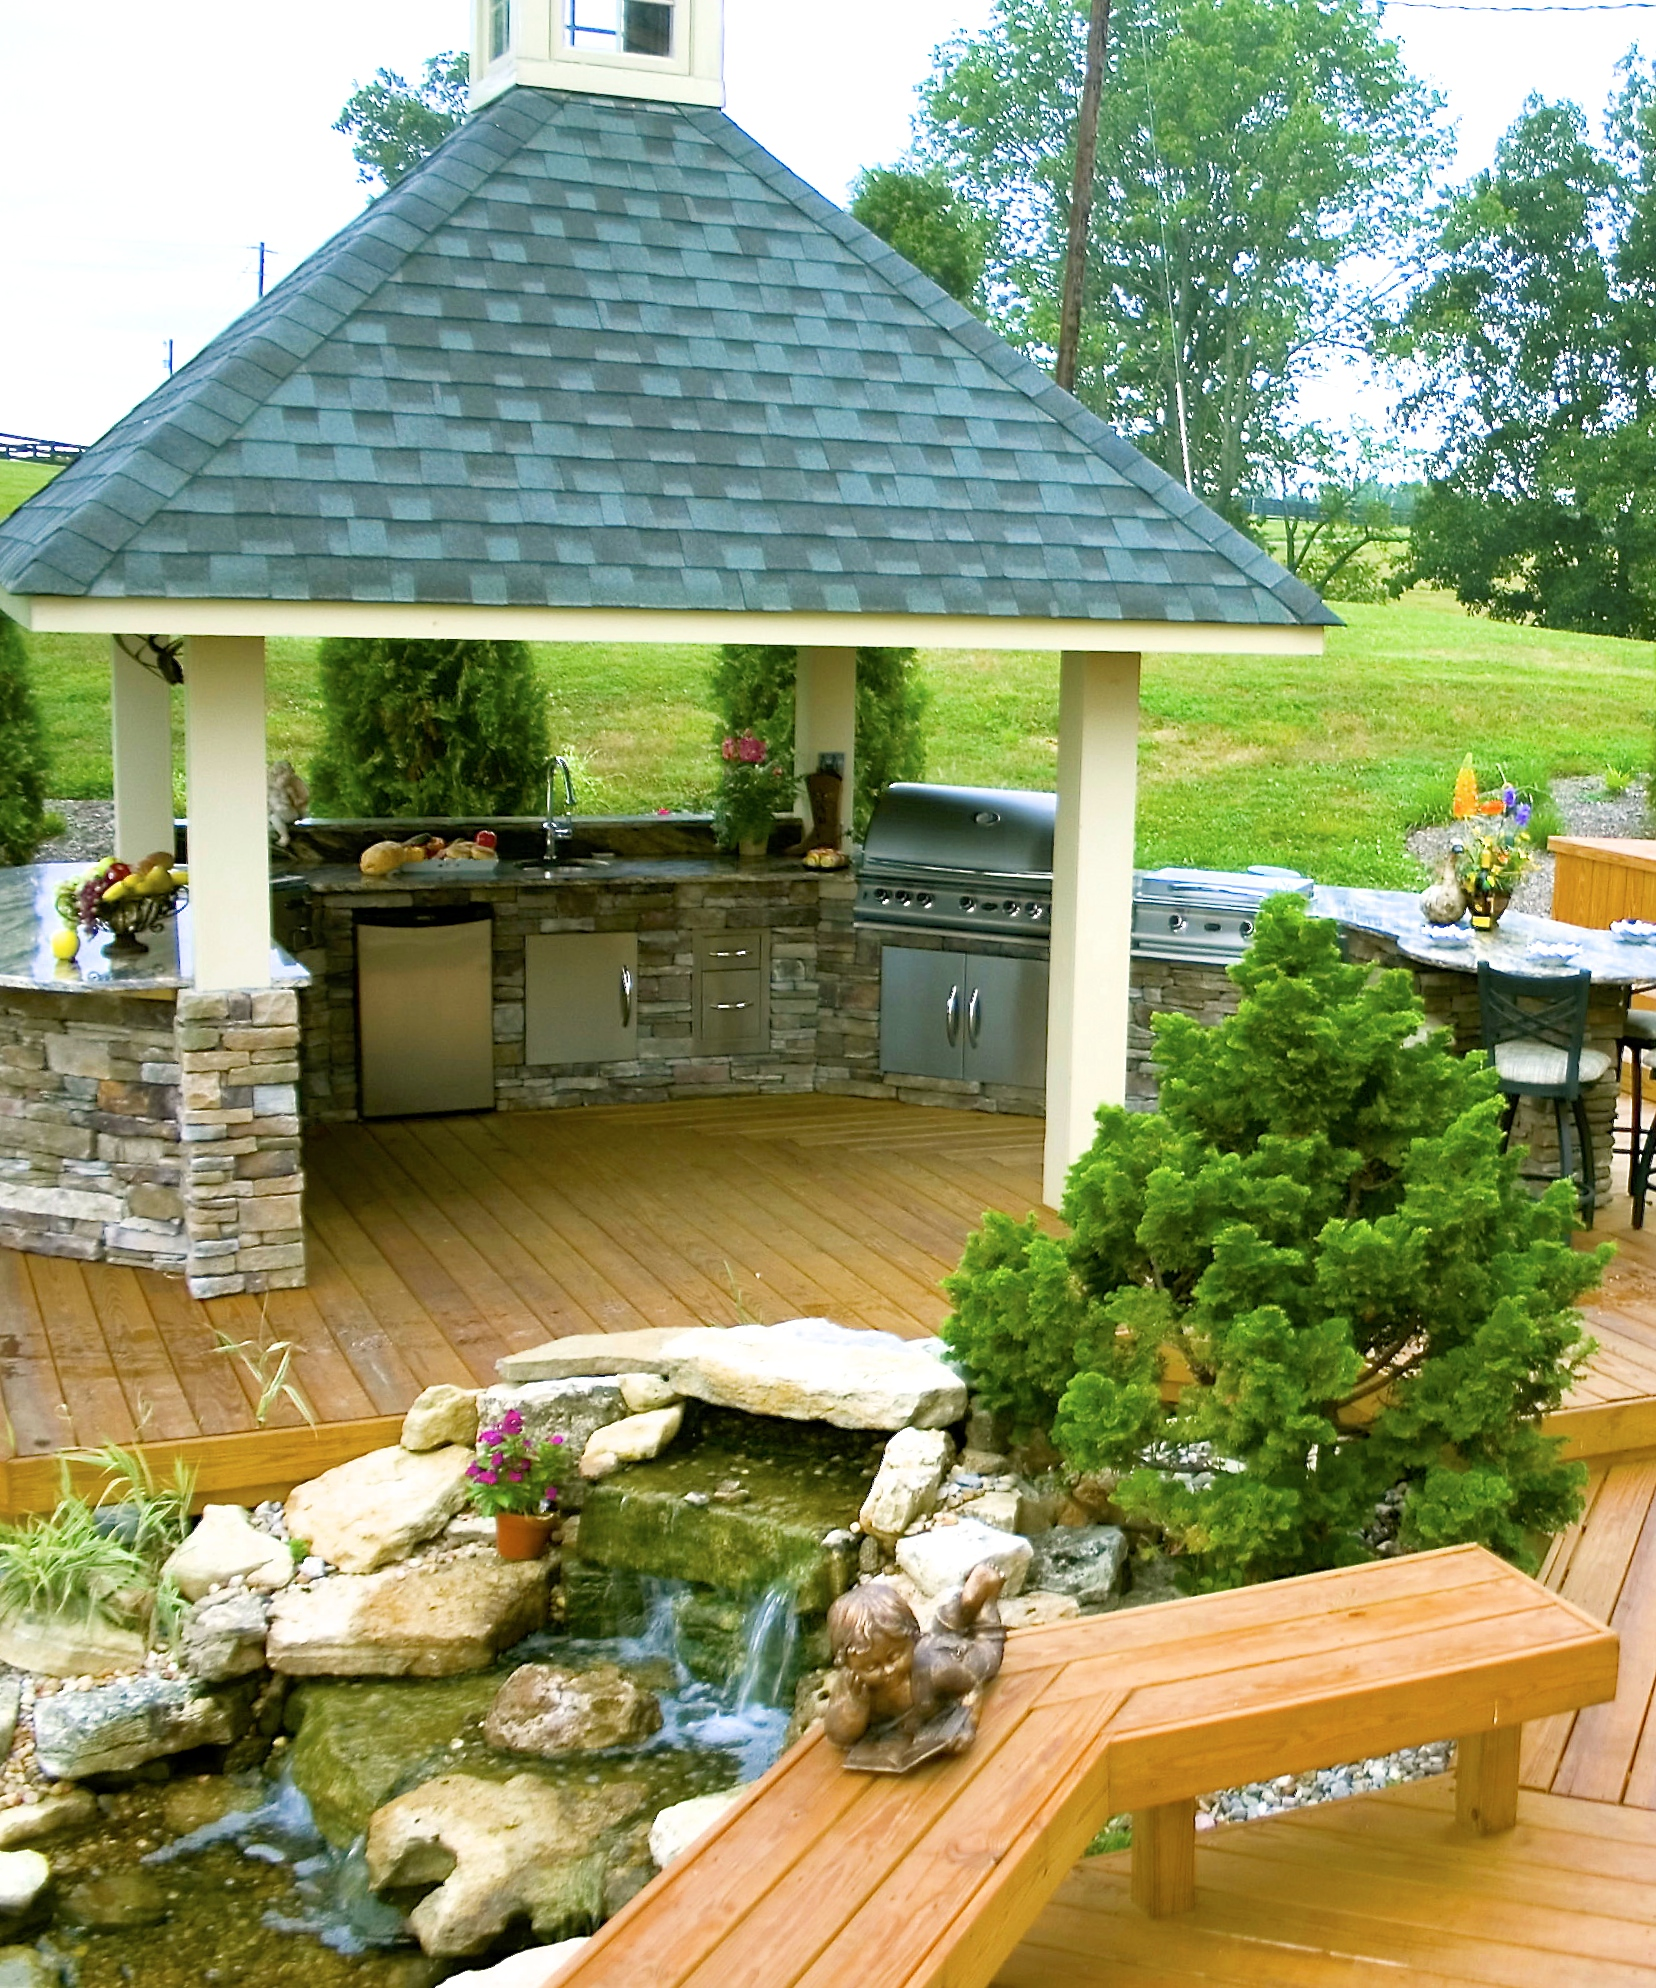 Custom Outdoor Kitchens By American Deck & Sunroom In